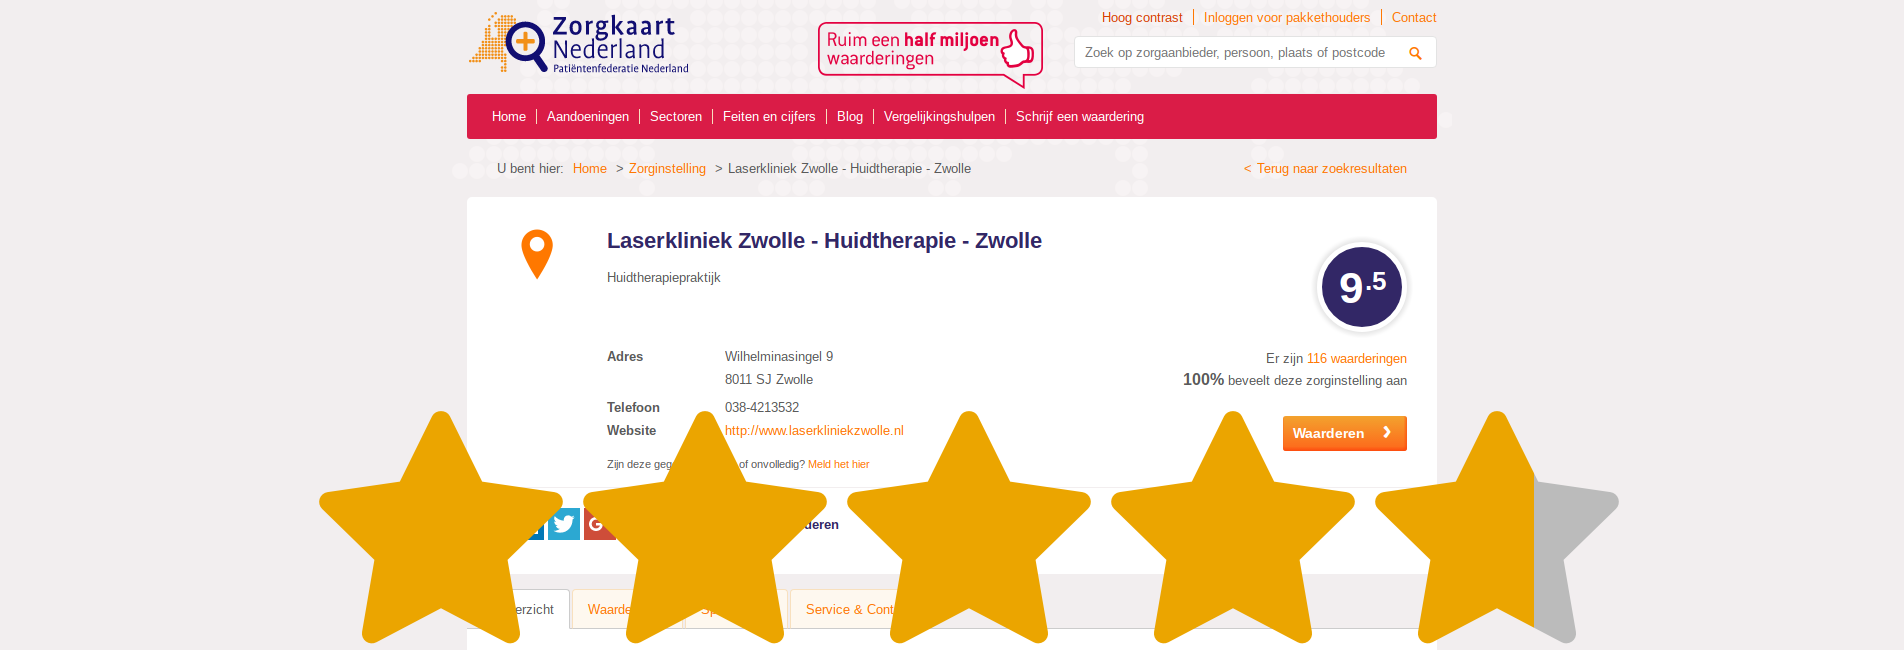 Reviews over Laserkliniek Zwolle